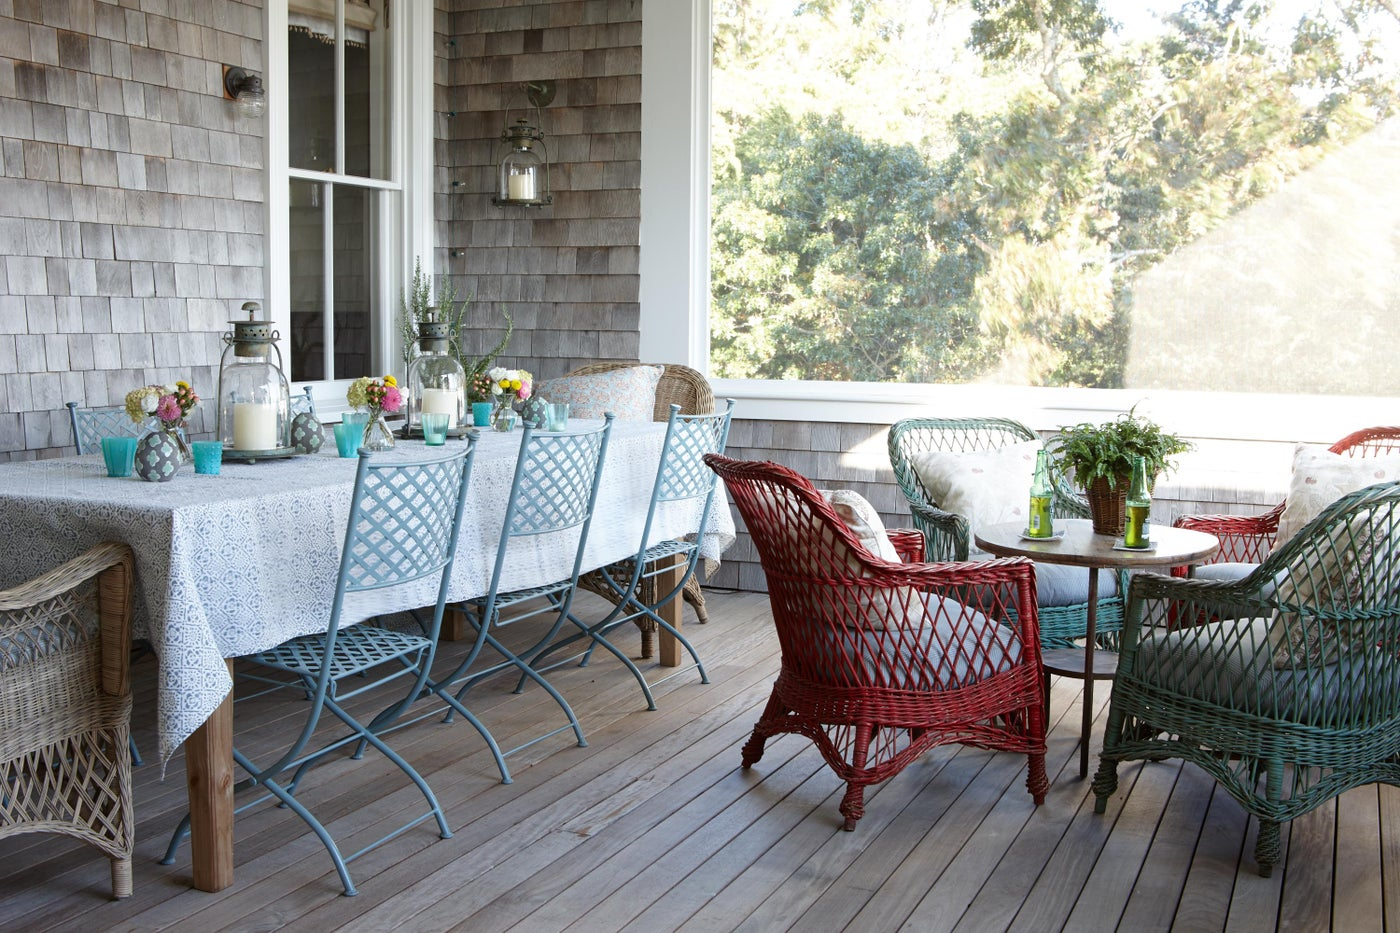 Exterior porch with antique wicker chairs.